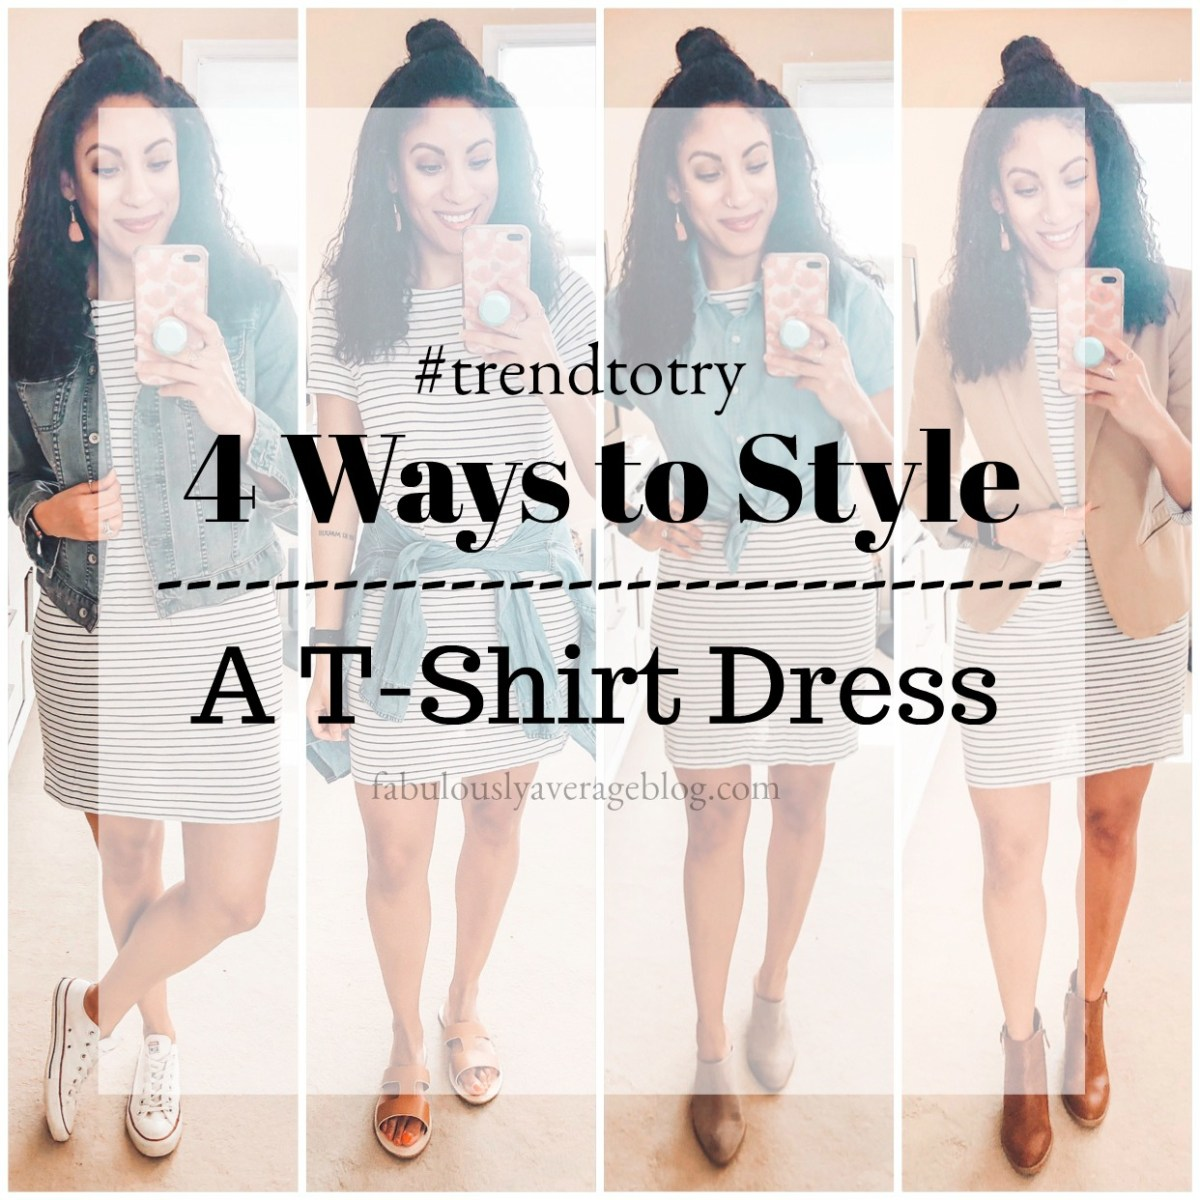 4 Ways to Style a TShirt Dress